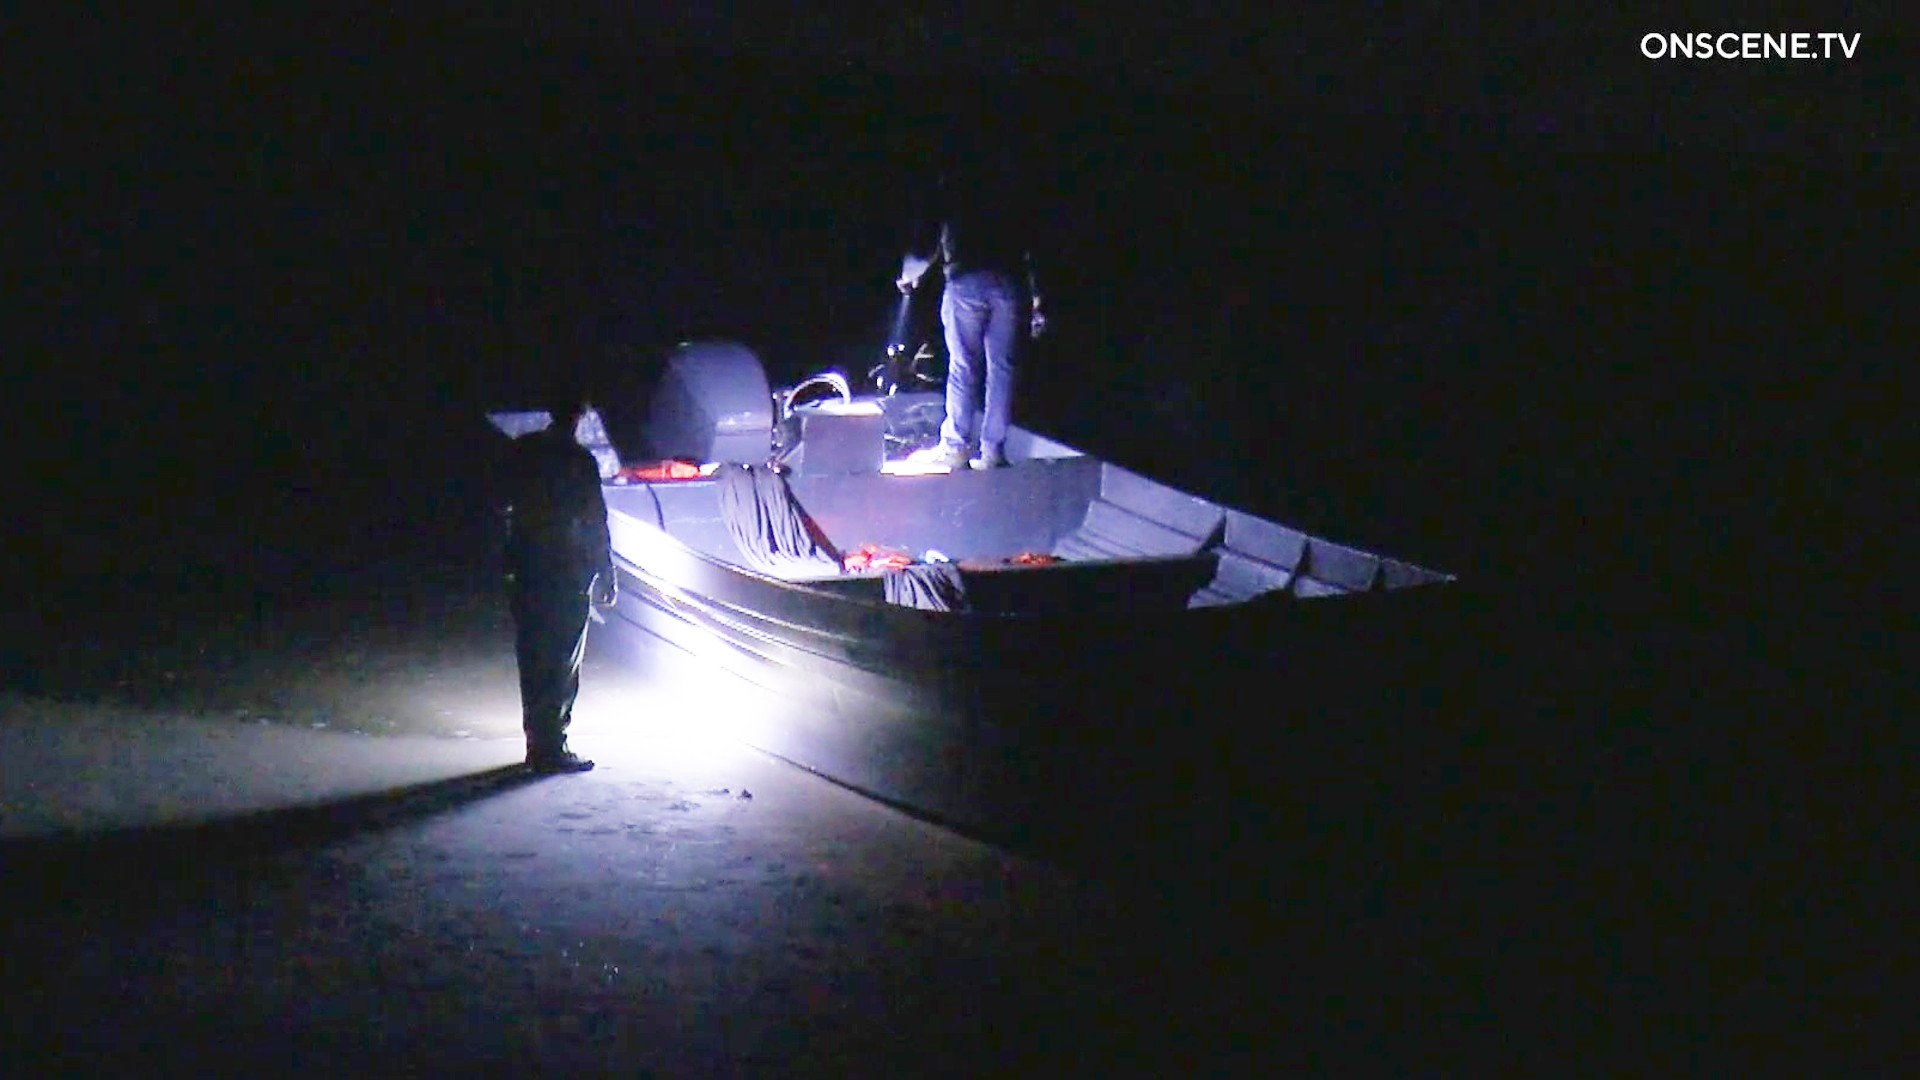 A panga boat is discovered in Ventura County on Oct. 18, 2021. (OnScene.TV)